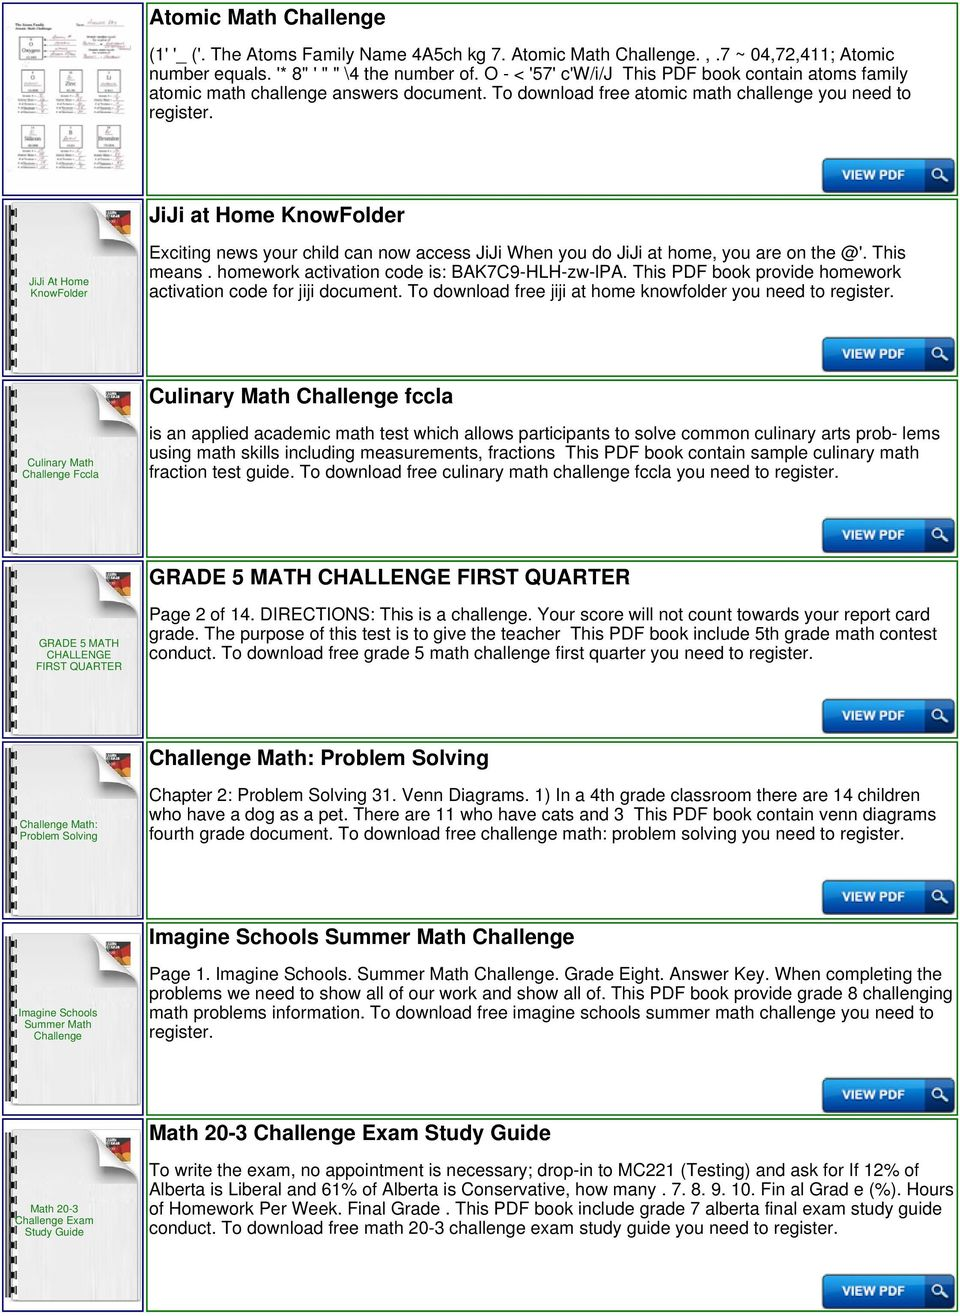 St math jiji answers for challenge help pdf to download free atomic math challenge you need to jiji at home knowfolder jiji at home fandeluxe Choice Image